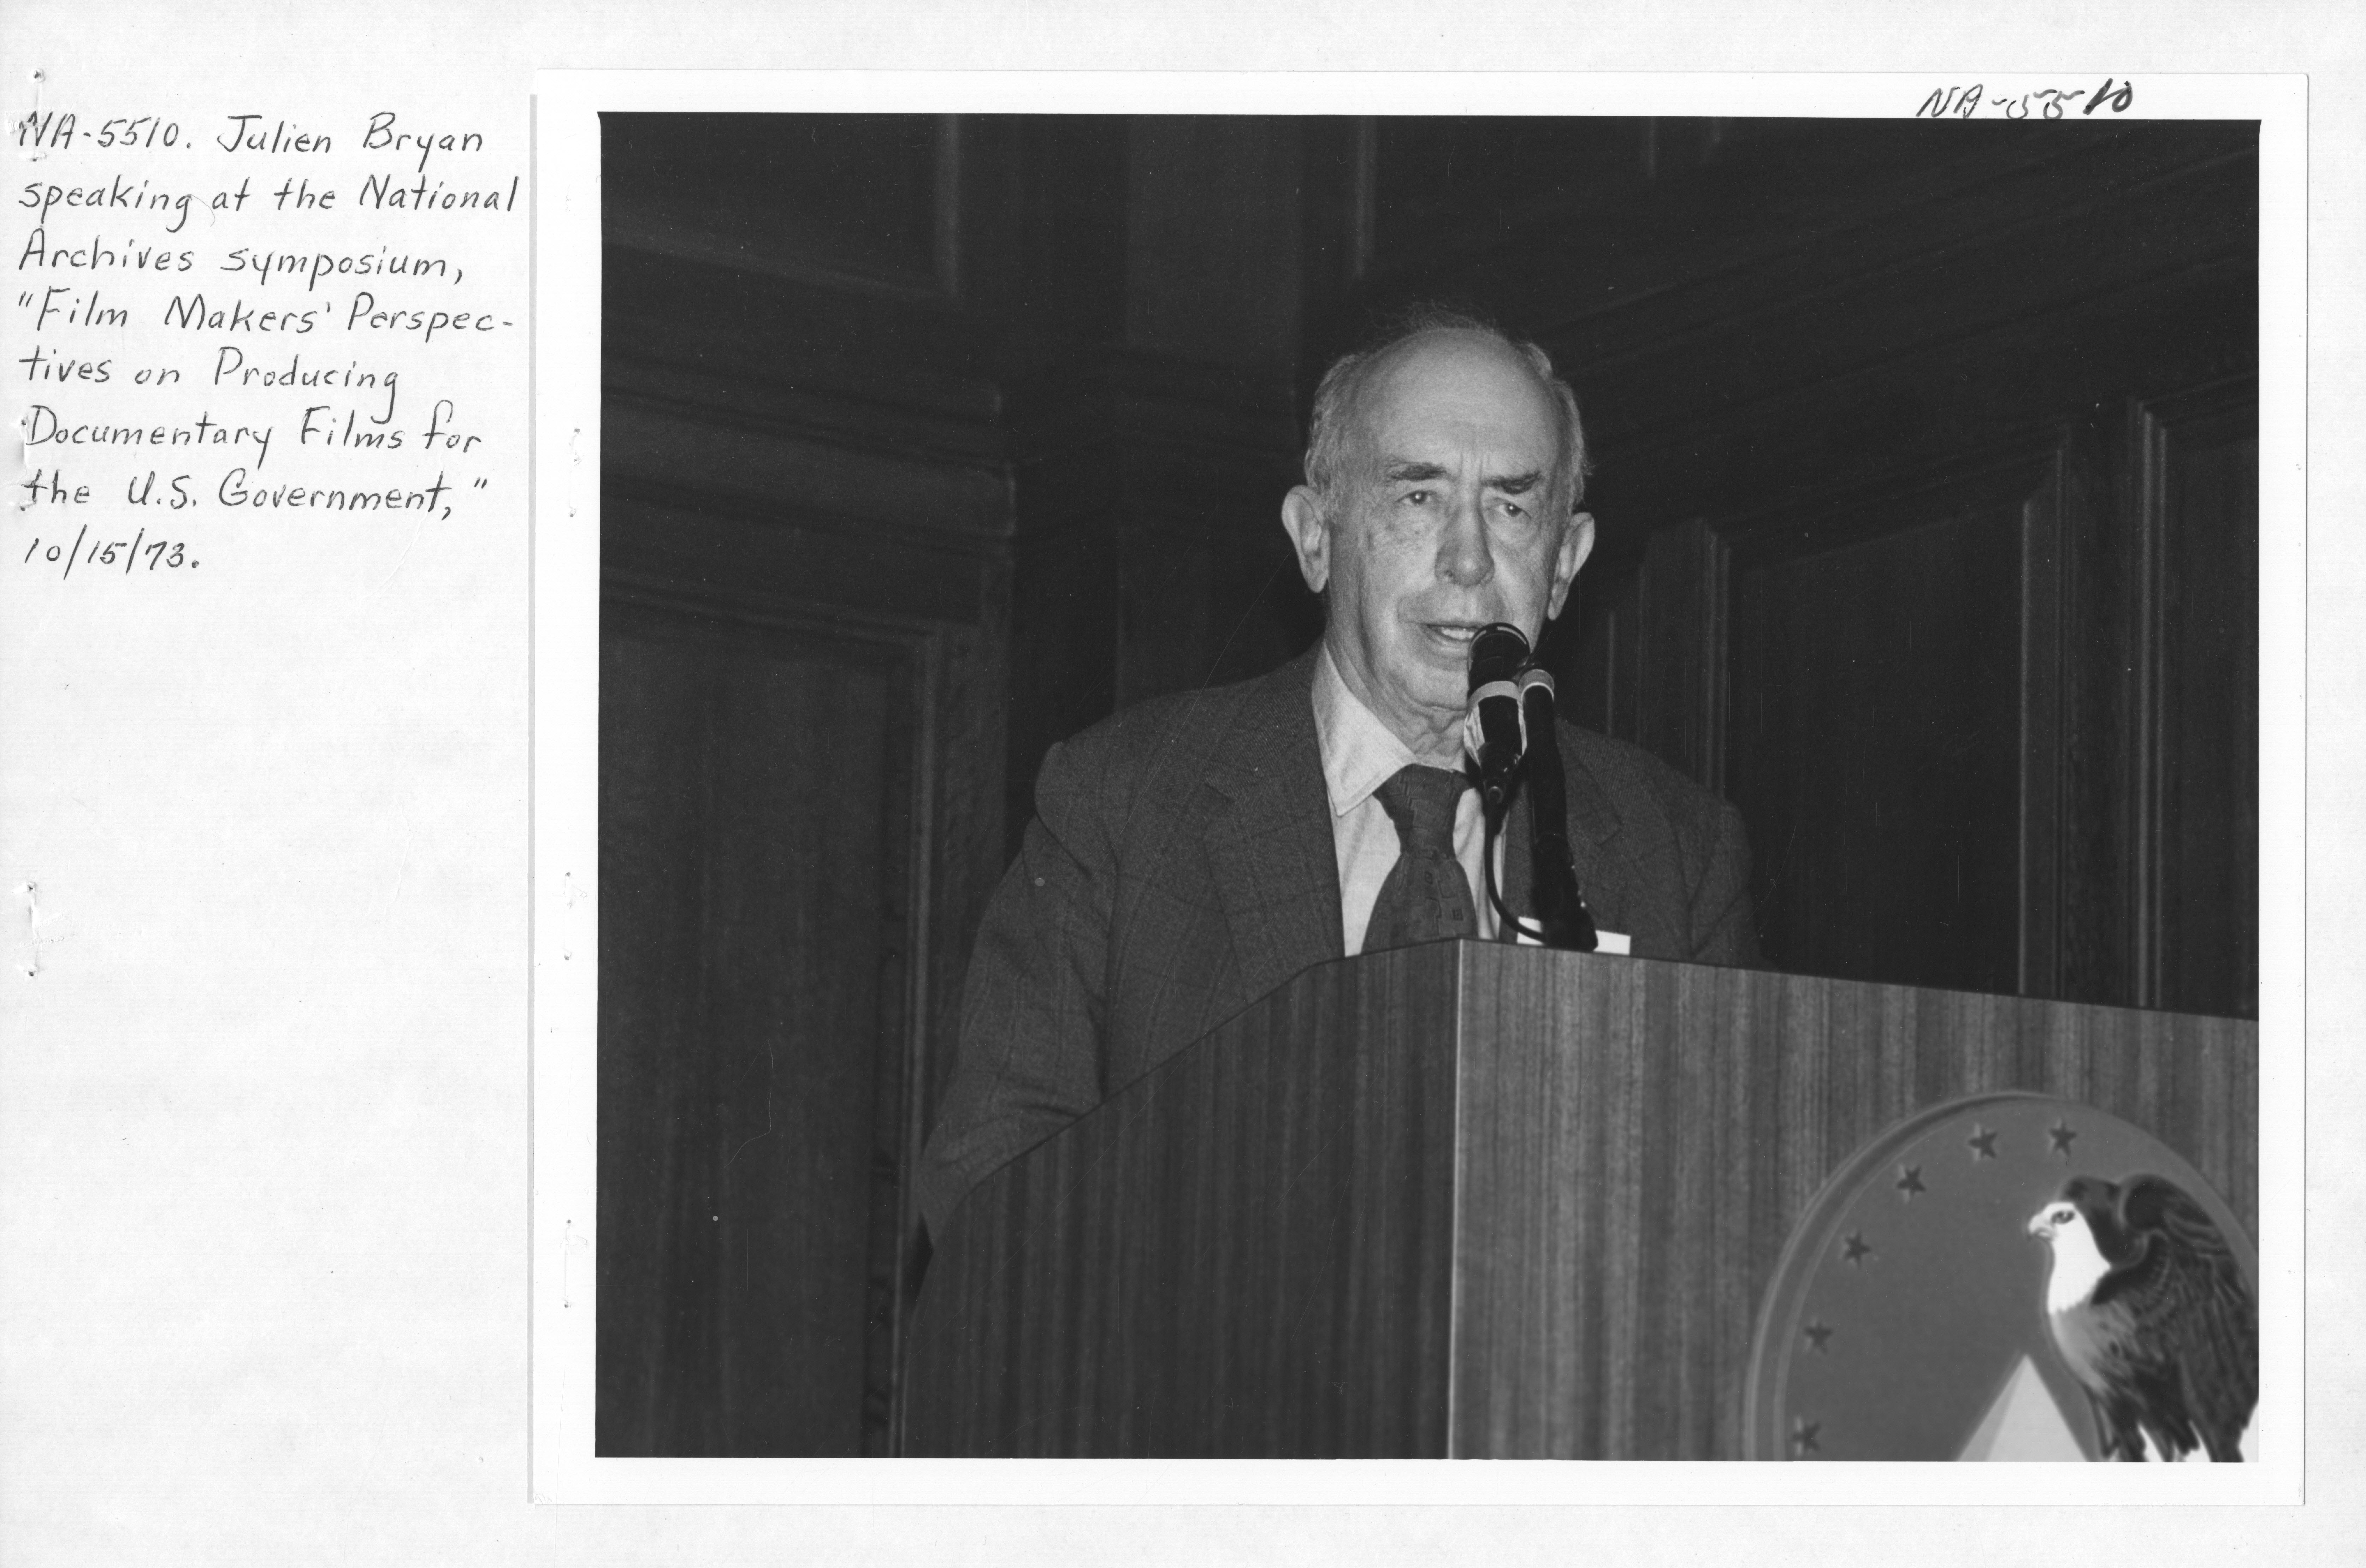 Photograph of Julien Bryan Speaking at the National Archives Symposium on